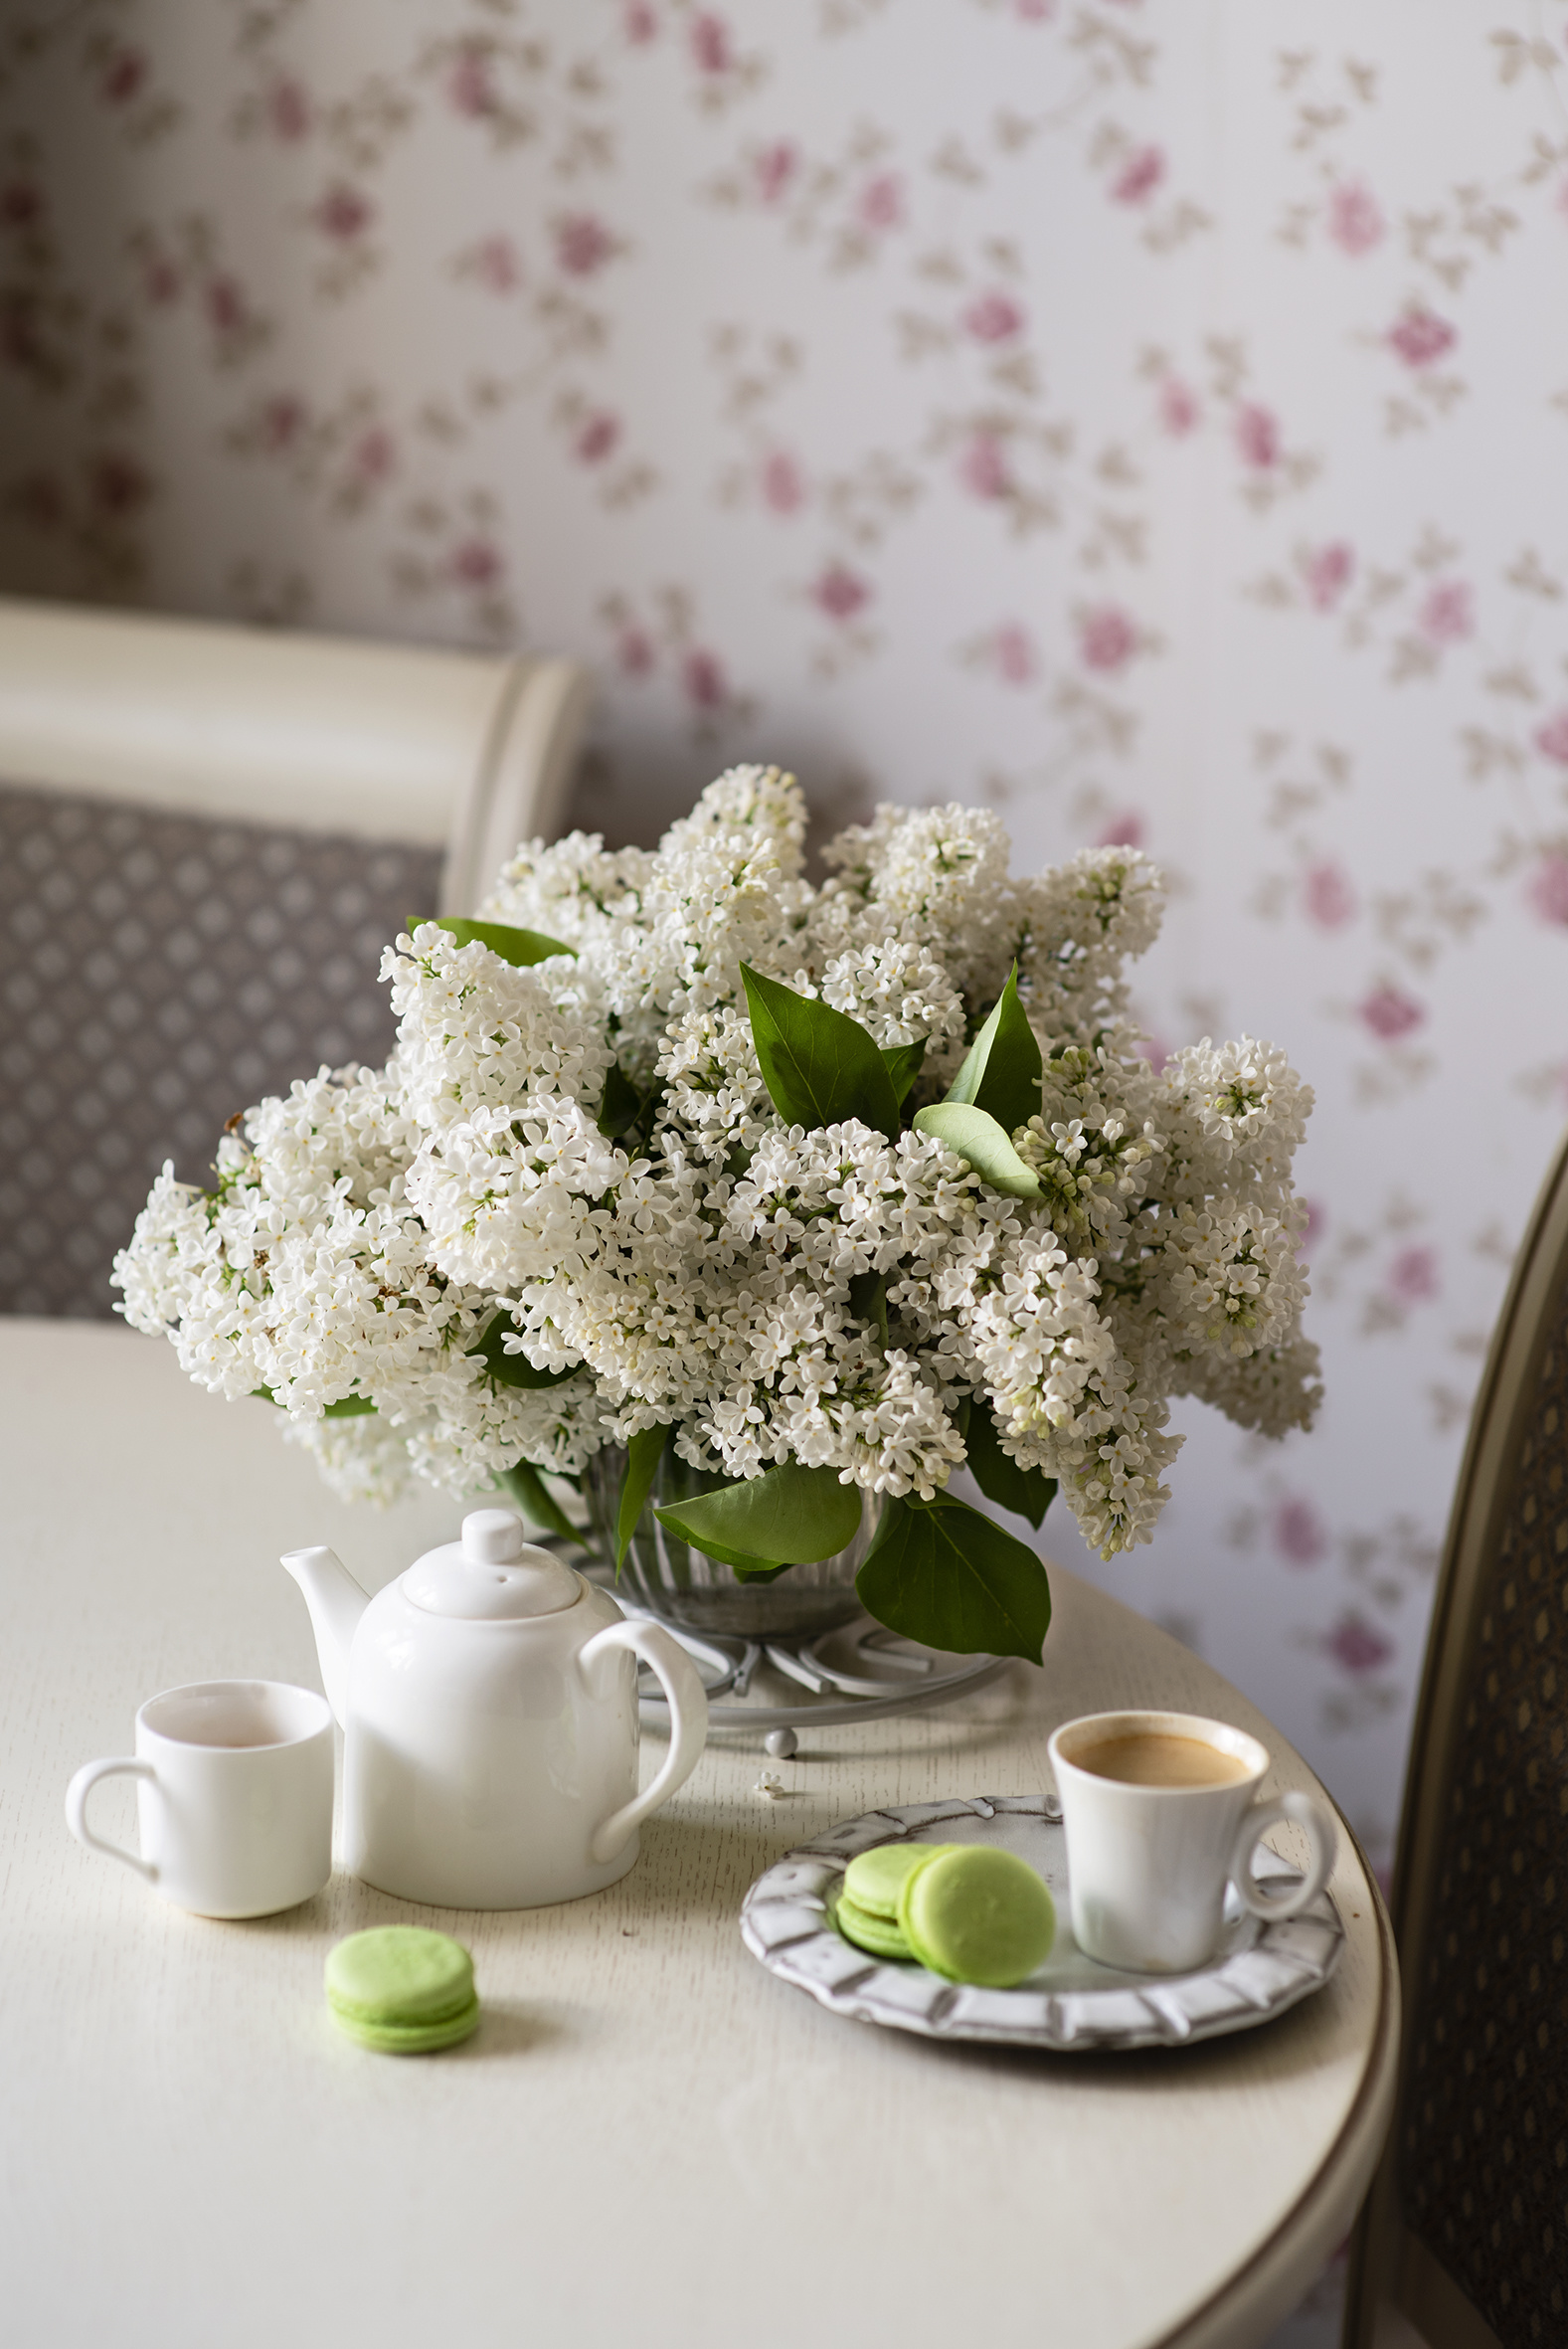 Pictures french macarons White Coffee Lilac flower Cup Food Still-life  for Mobile phone Macaron Flowers Syringa